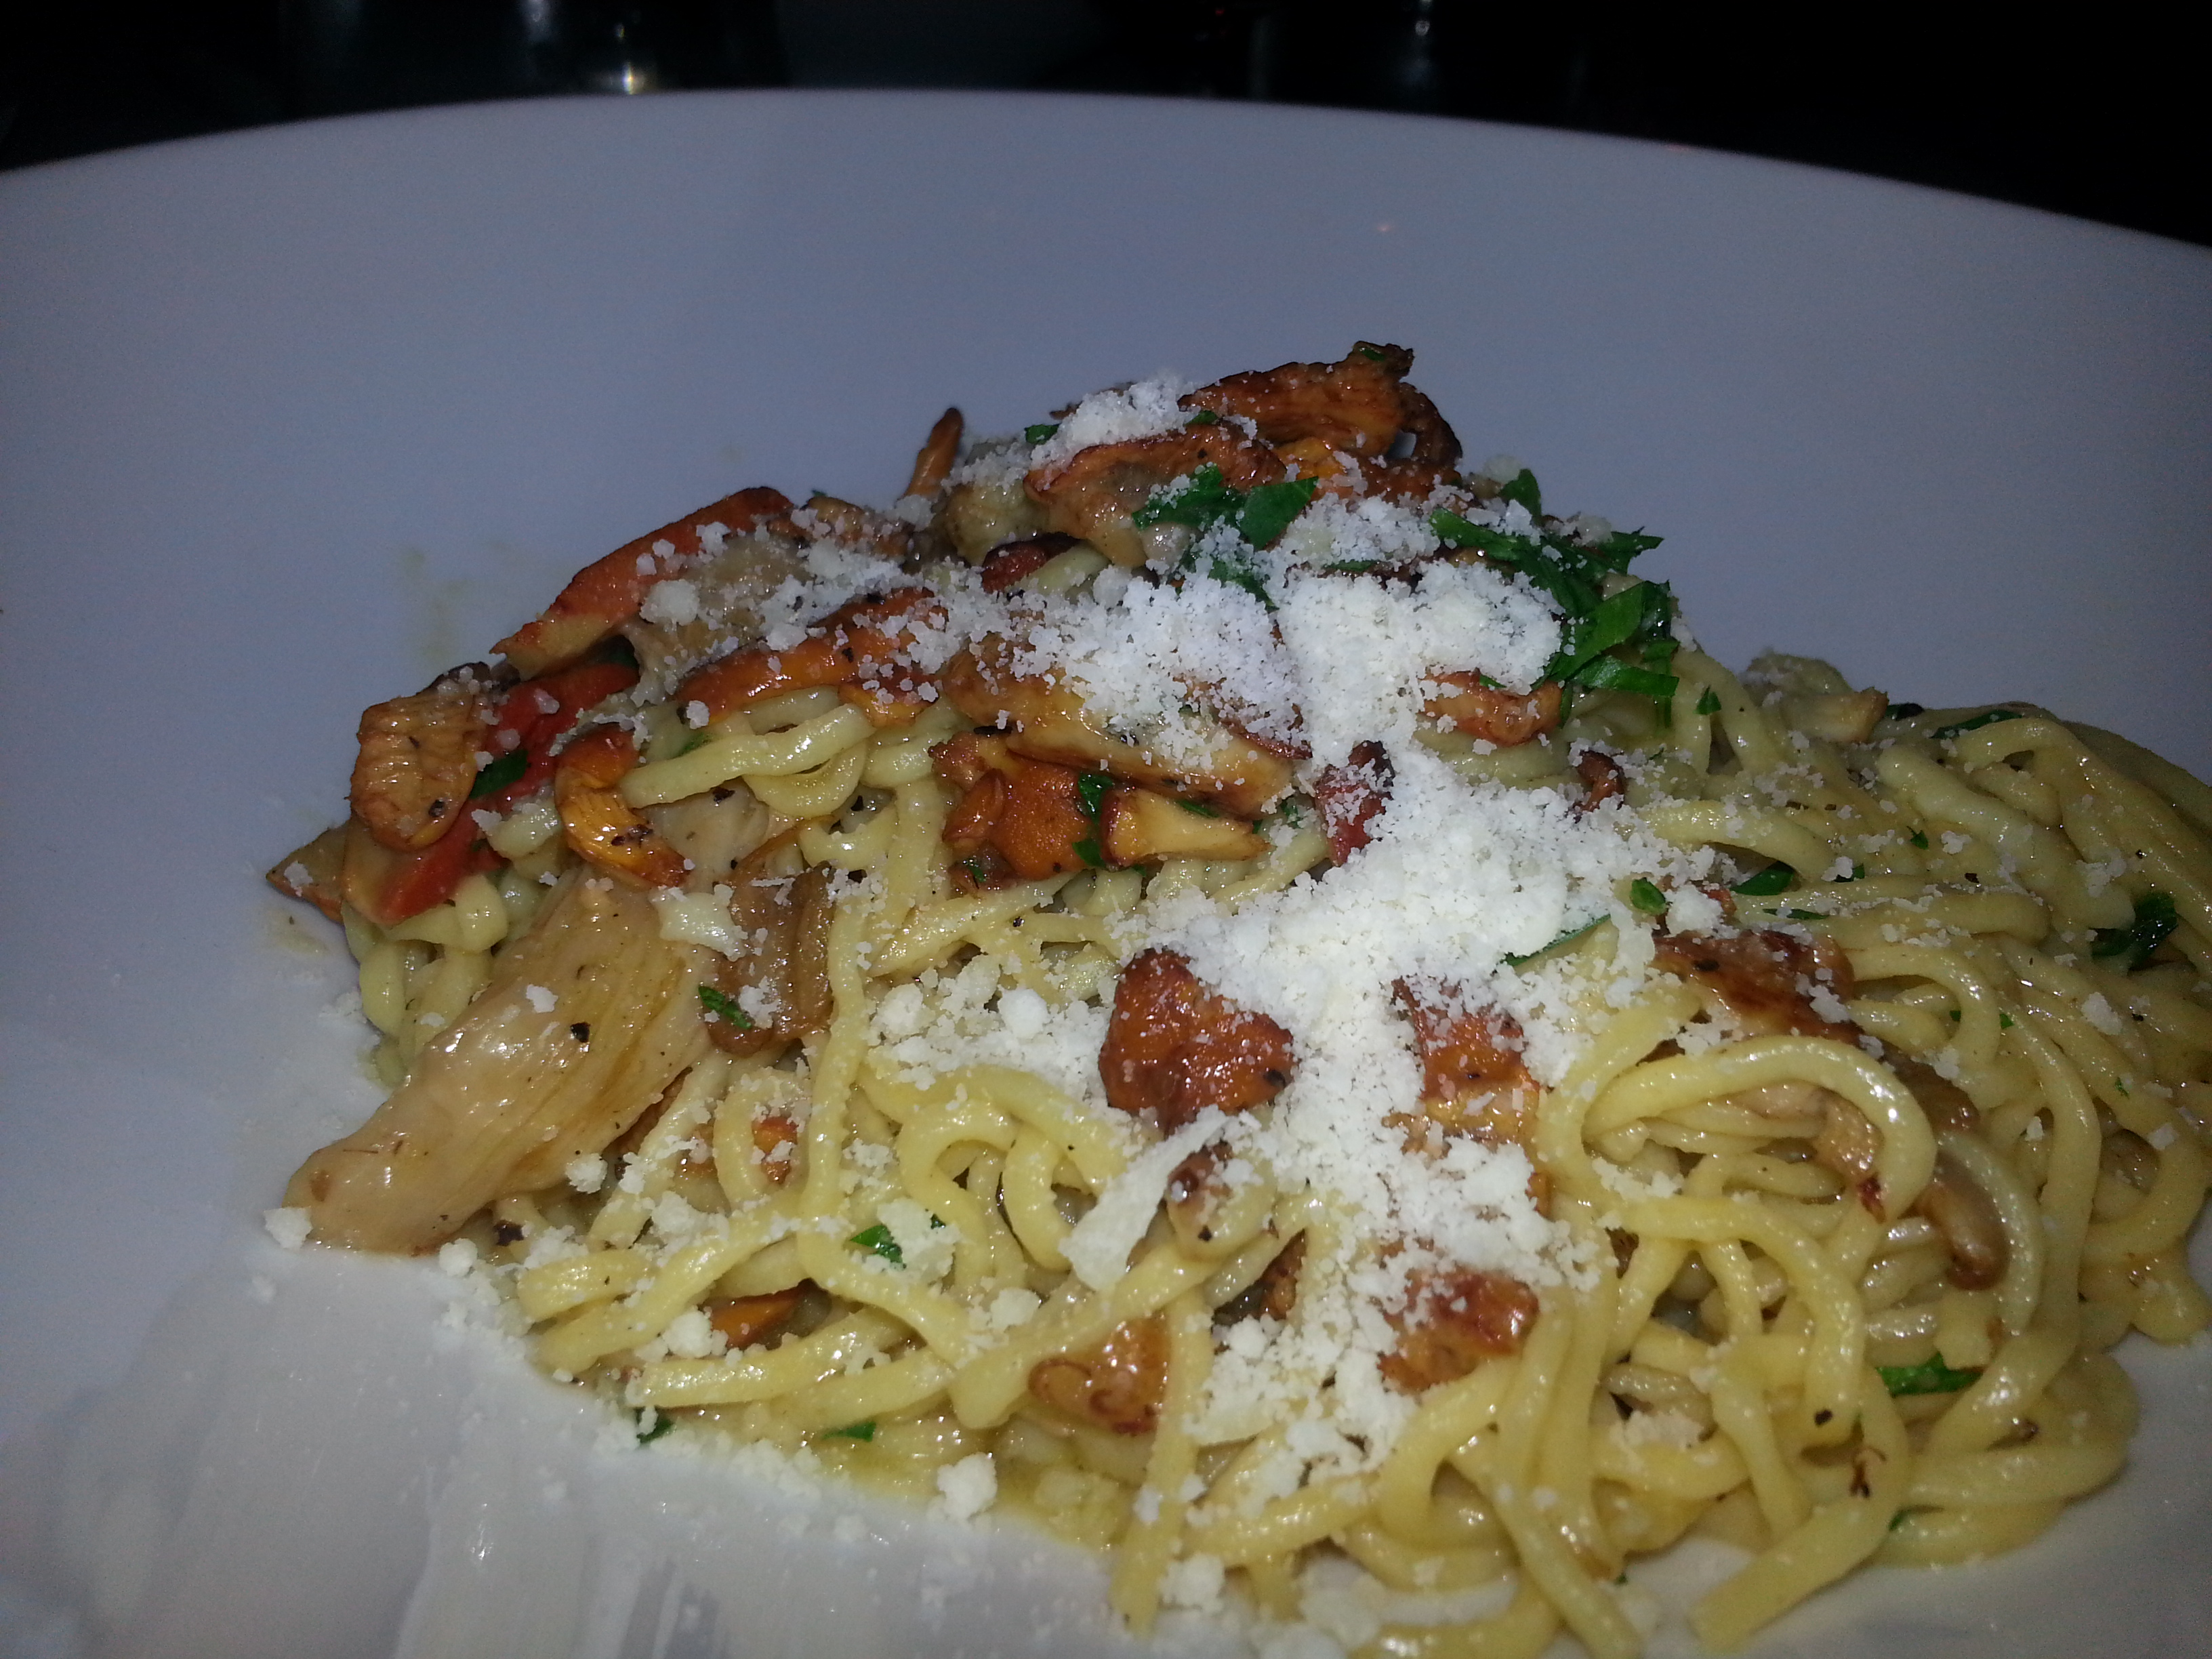 Montreal Food Pasta with Mushrooms